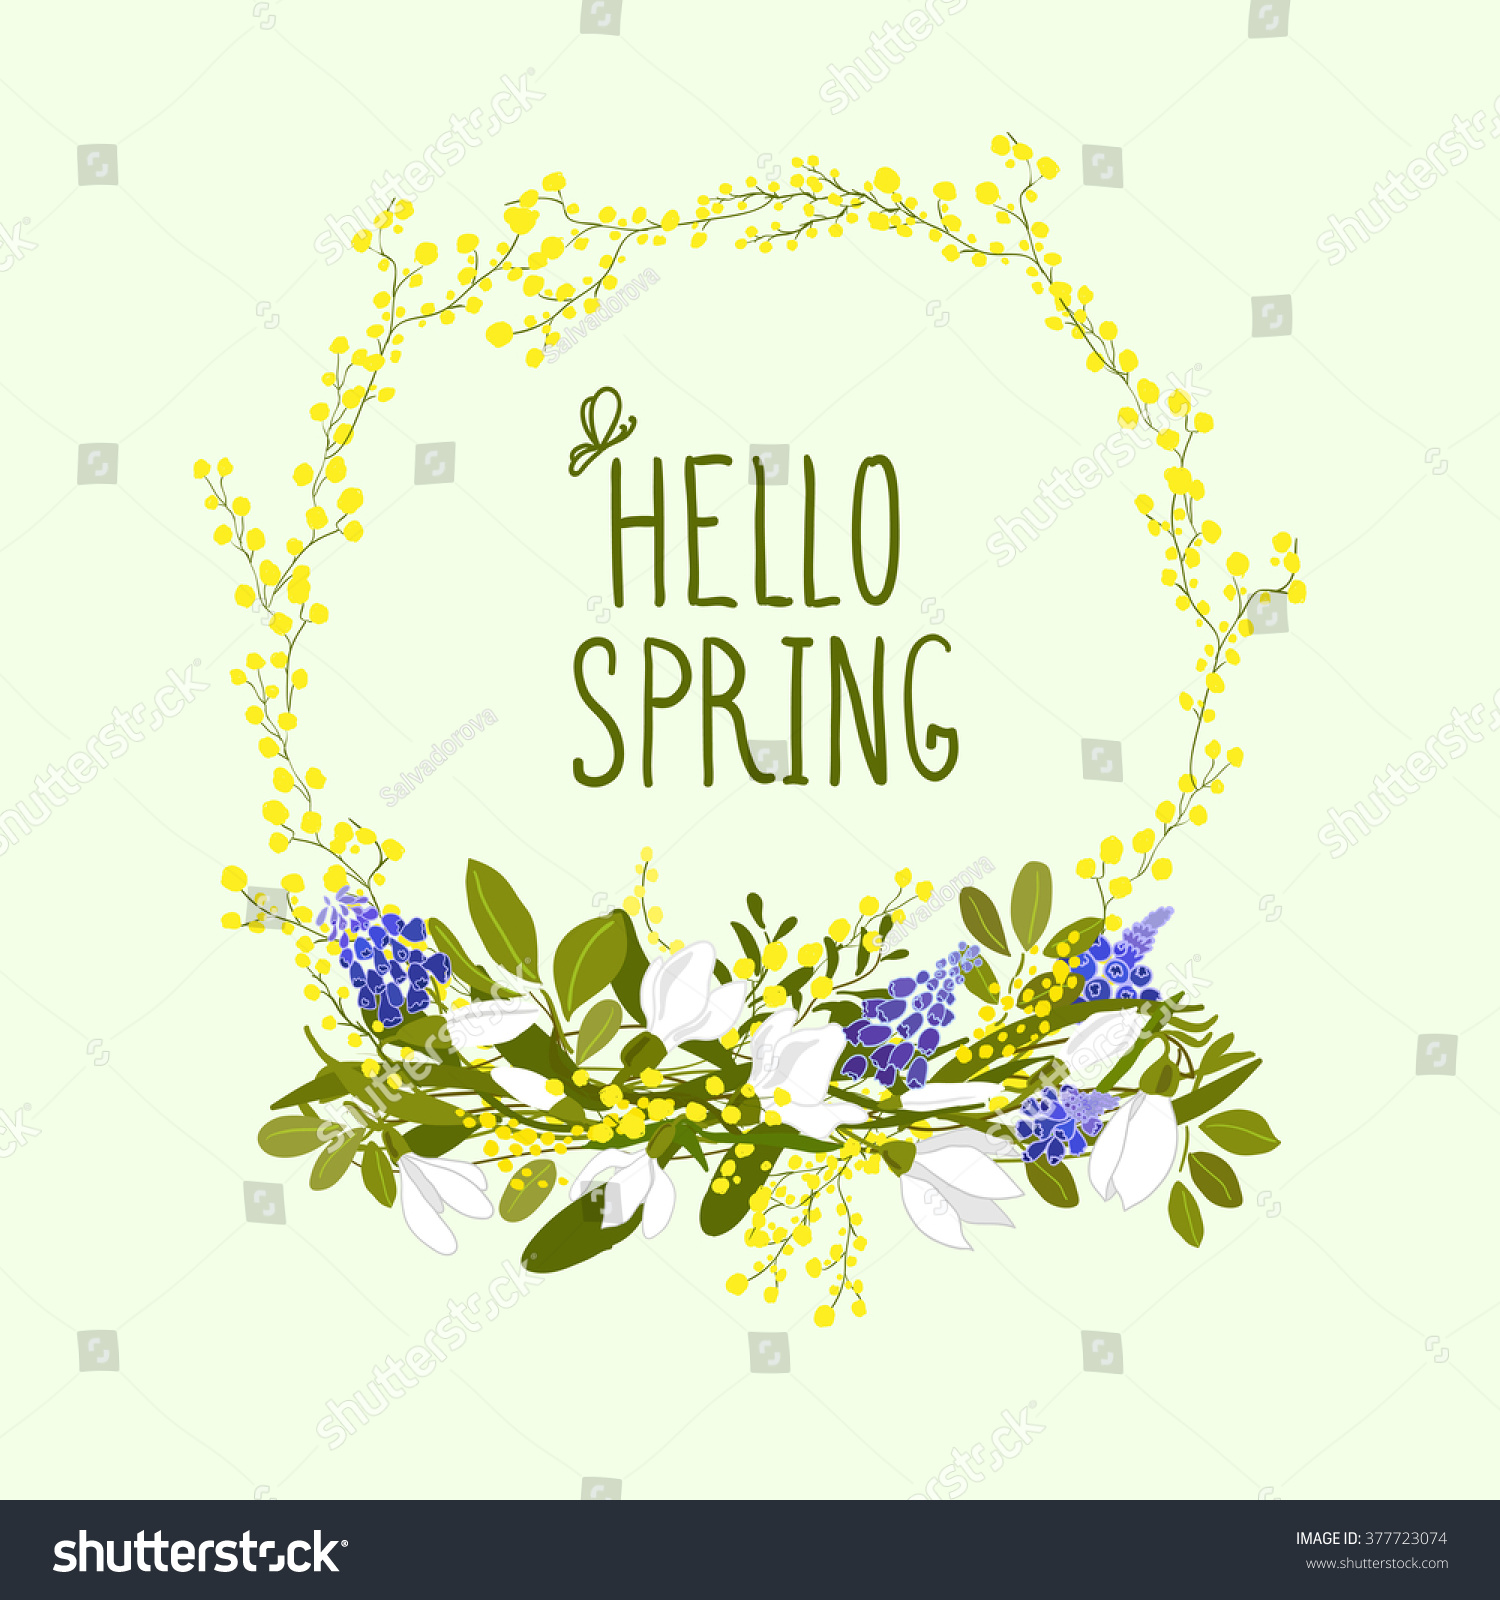 Cute spring flower - Cute Hand Drawn Wreath Of First Spring Flowers And Hand Written Text Hello Spring Greeting